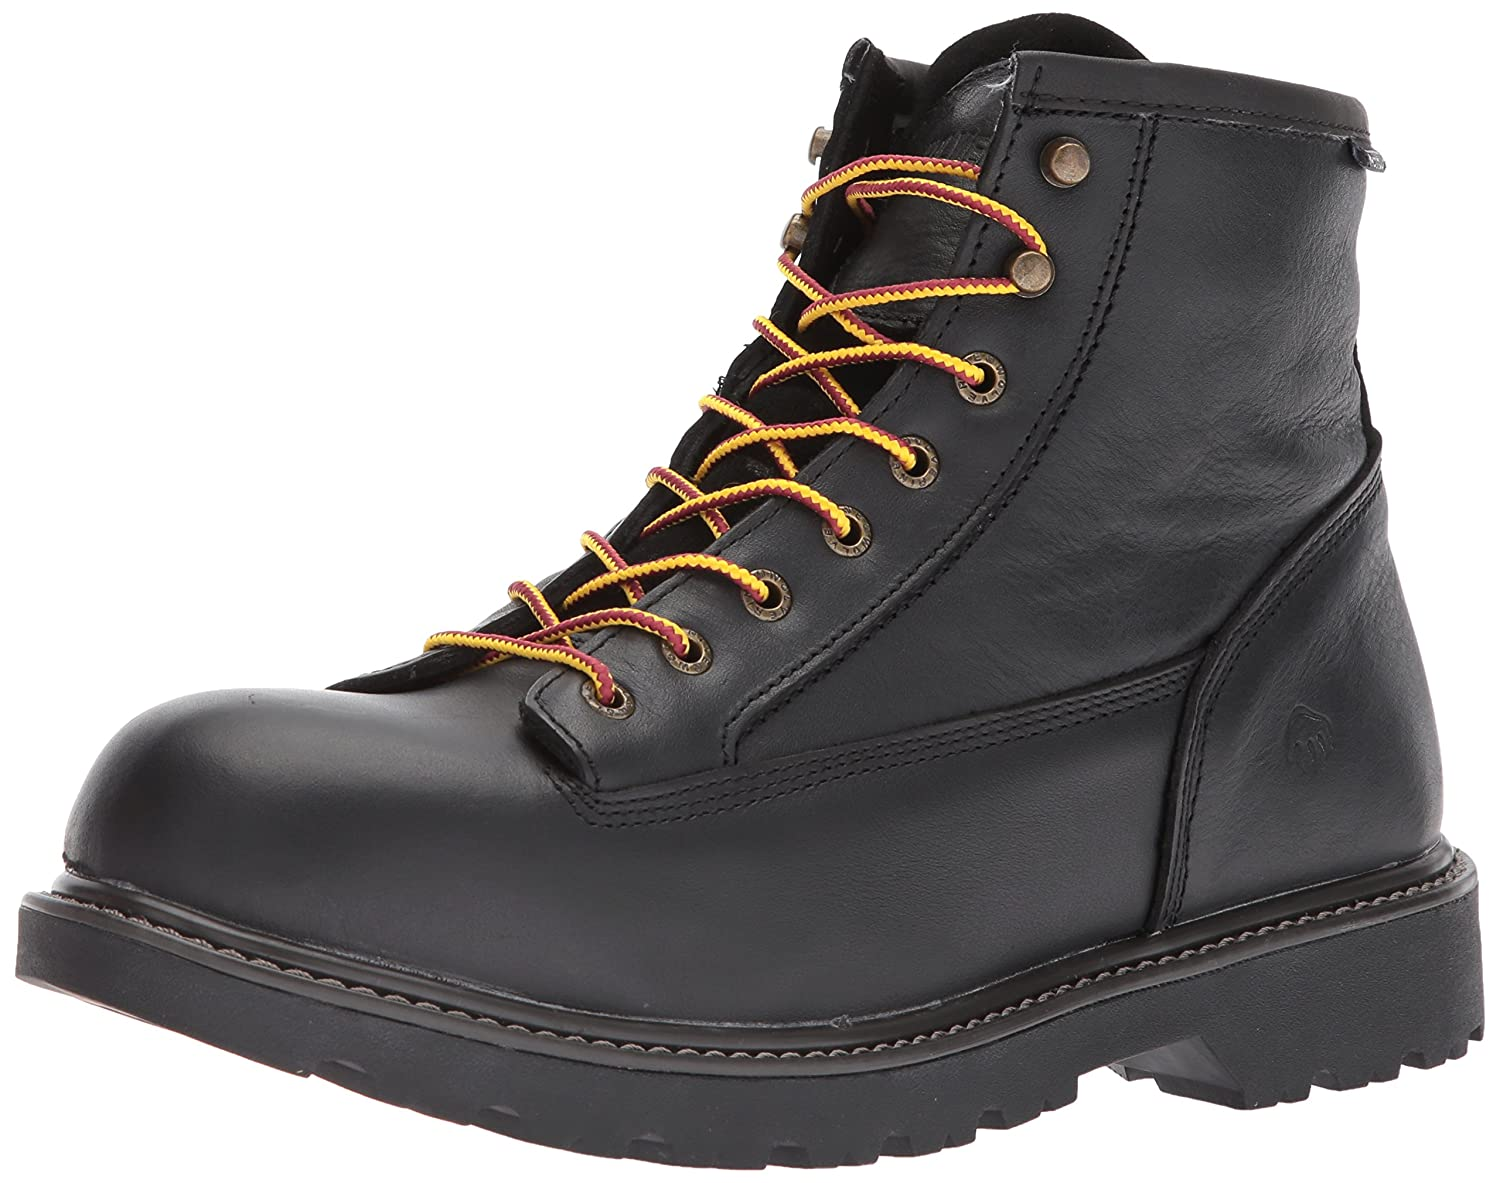 Wolverine メンズ Floorhand II Waterproof Soft-Toe 6